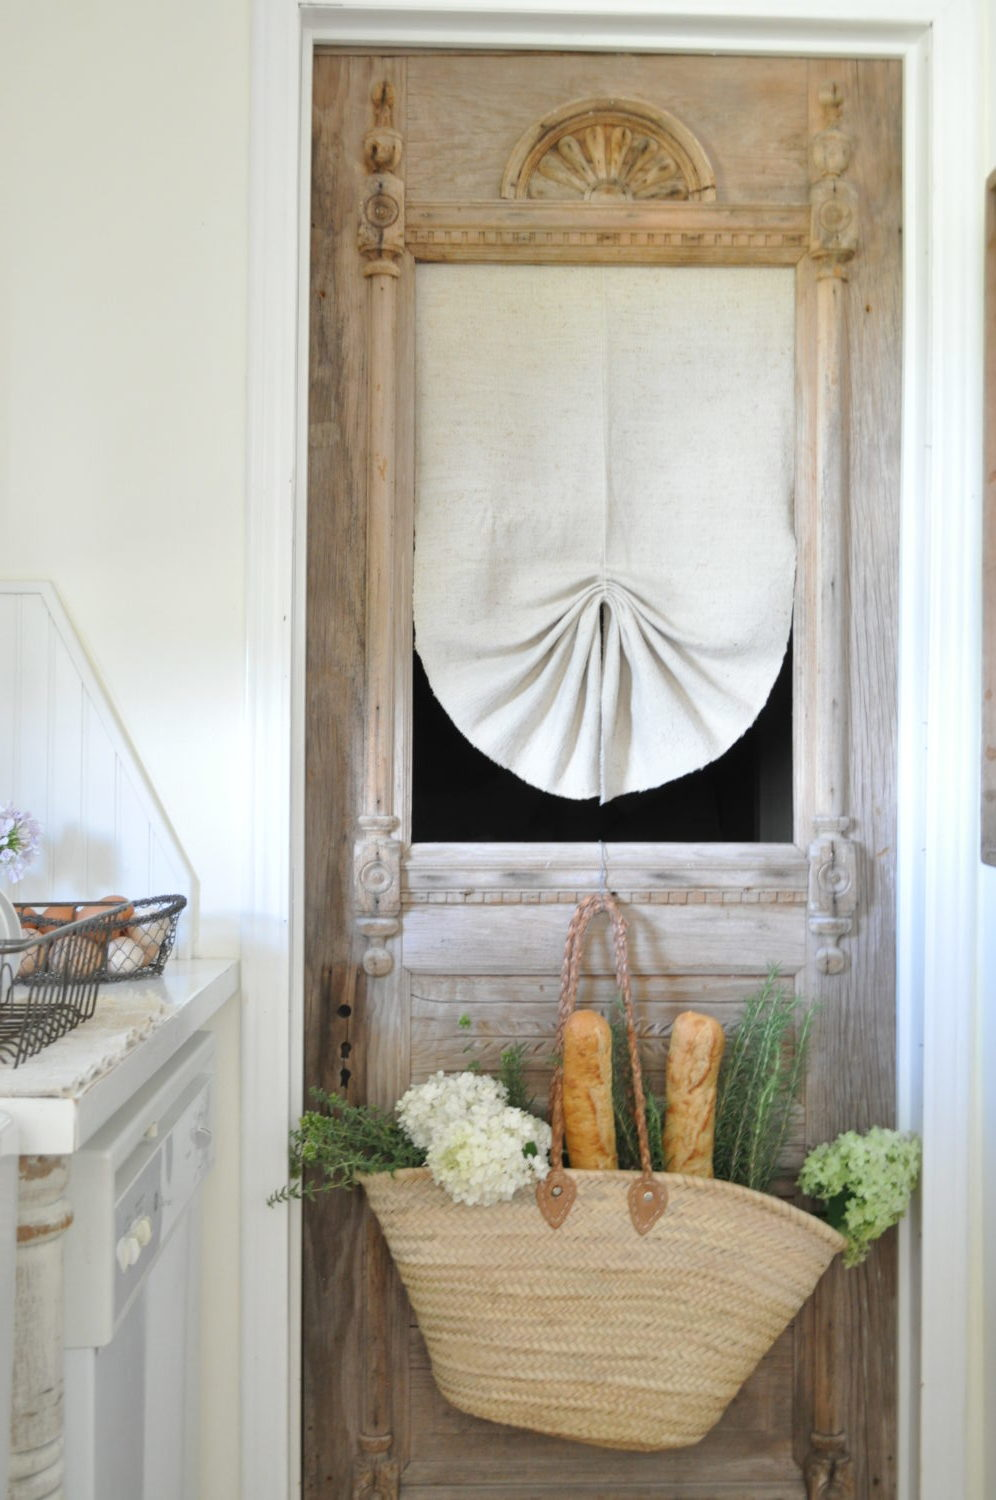 Creative ways to hang curtains becky 39 s farmhouse - Unique ways to hang curtains ...